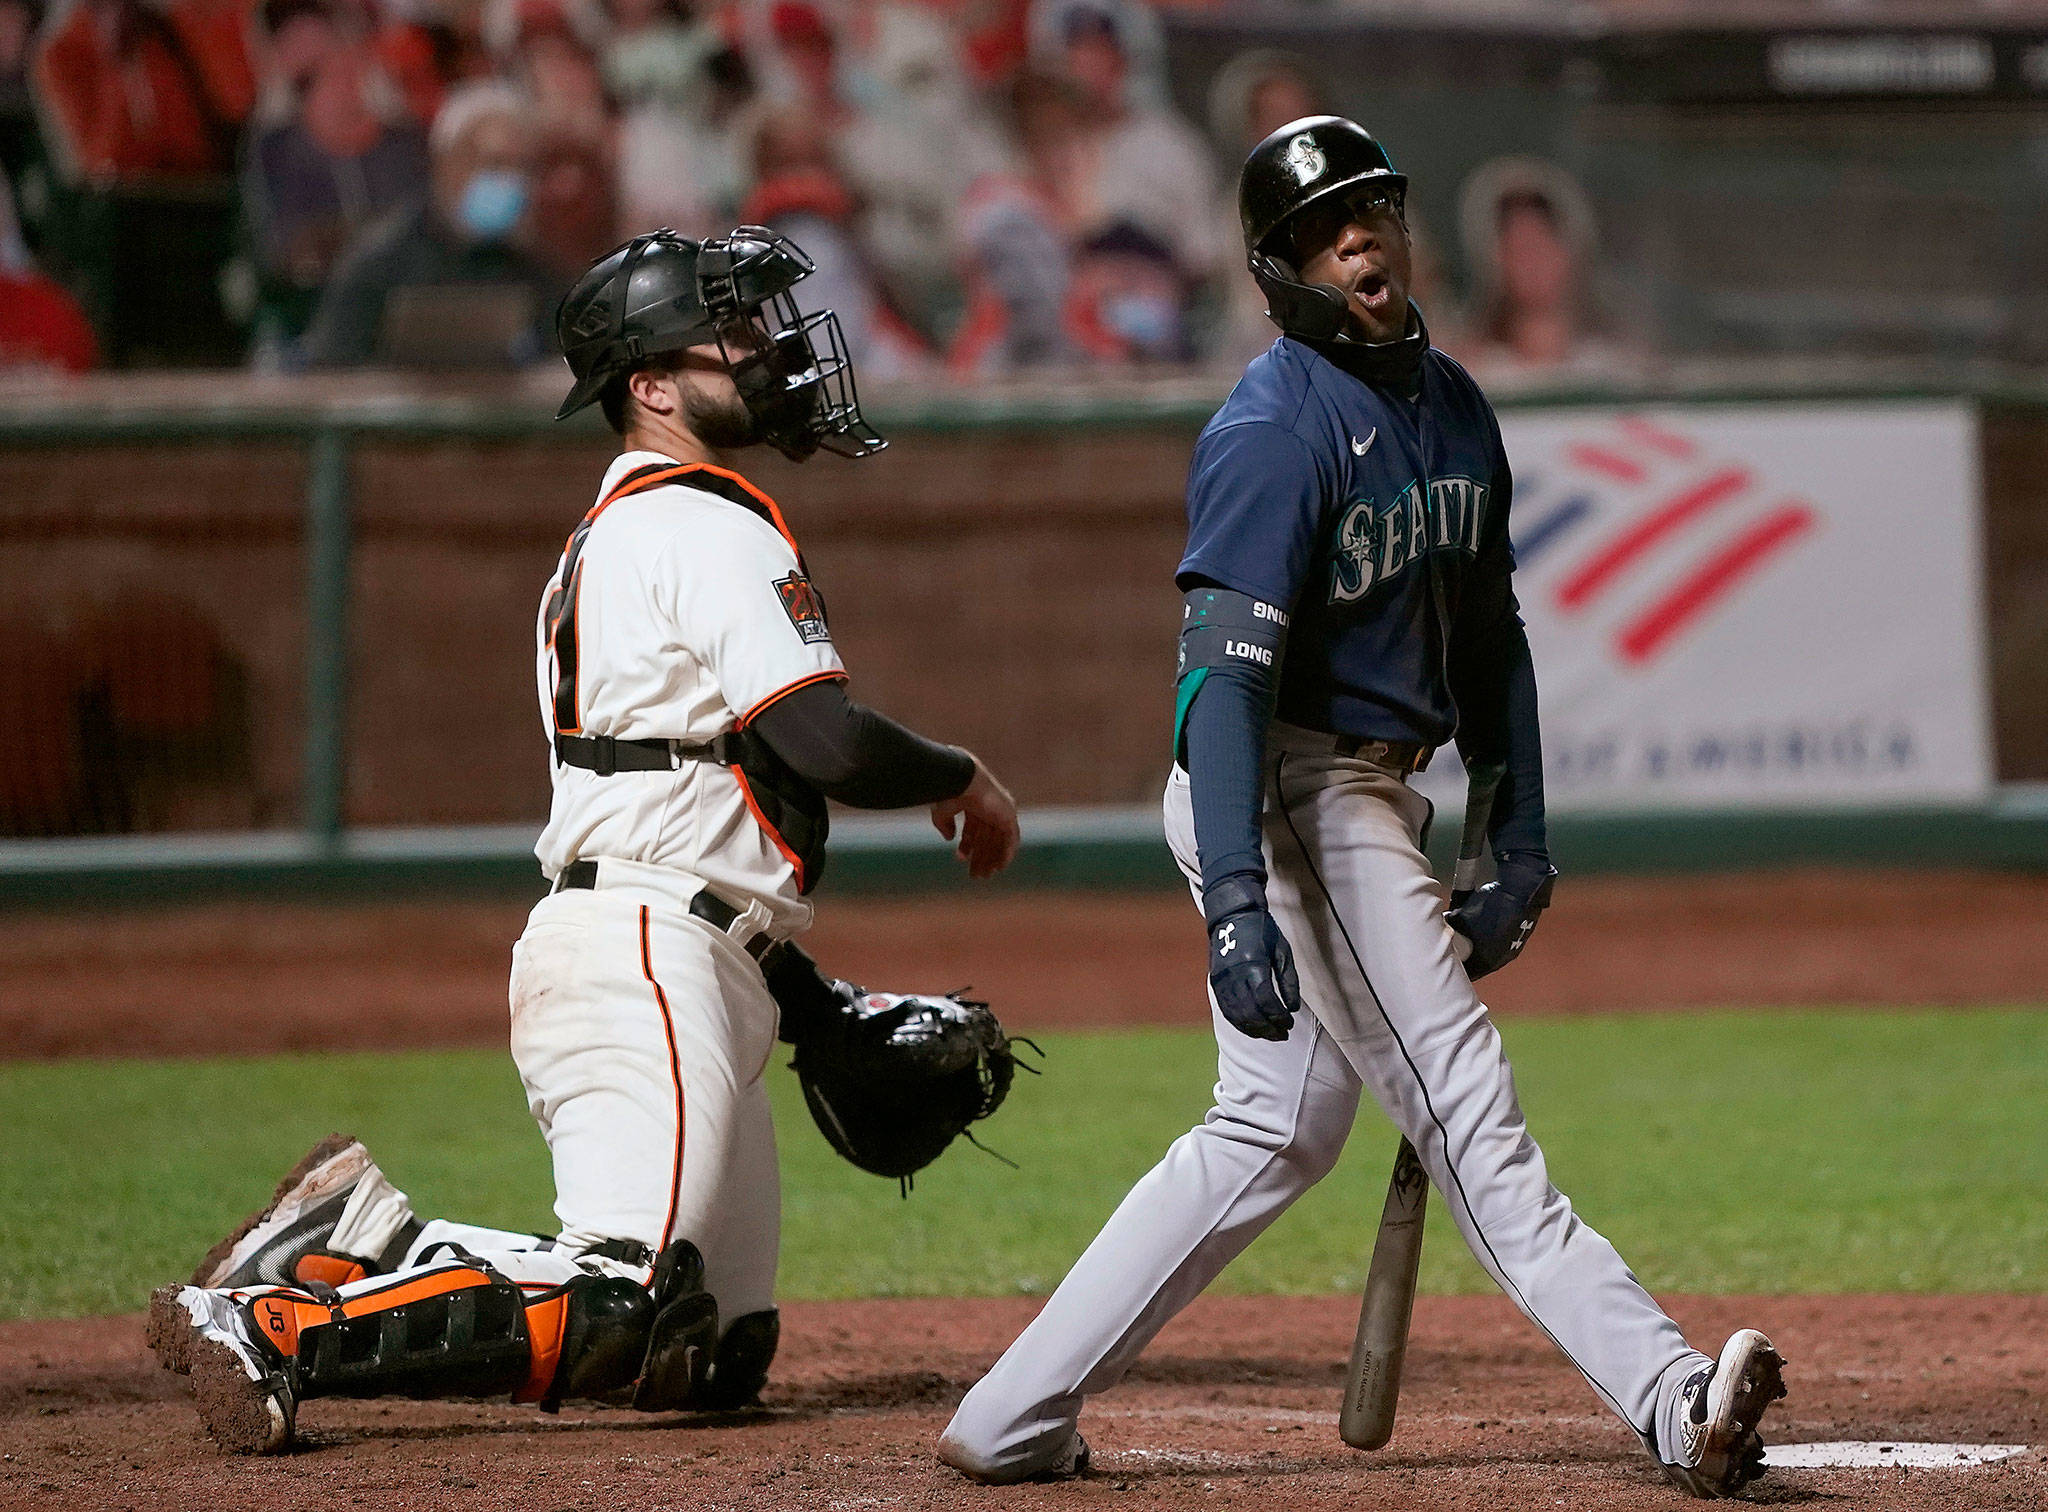 The Mariners' Shed Long Jr. reacts after striking out against the Giants during the sixth inning of a game Sept. 8, 2020, in San Francisco. (AP Photo/Tony Avelar)